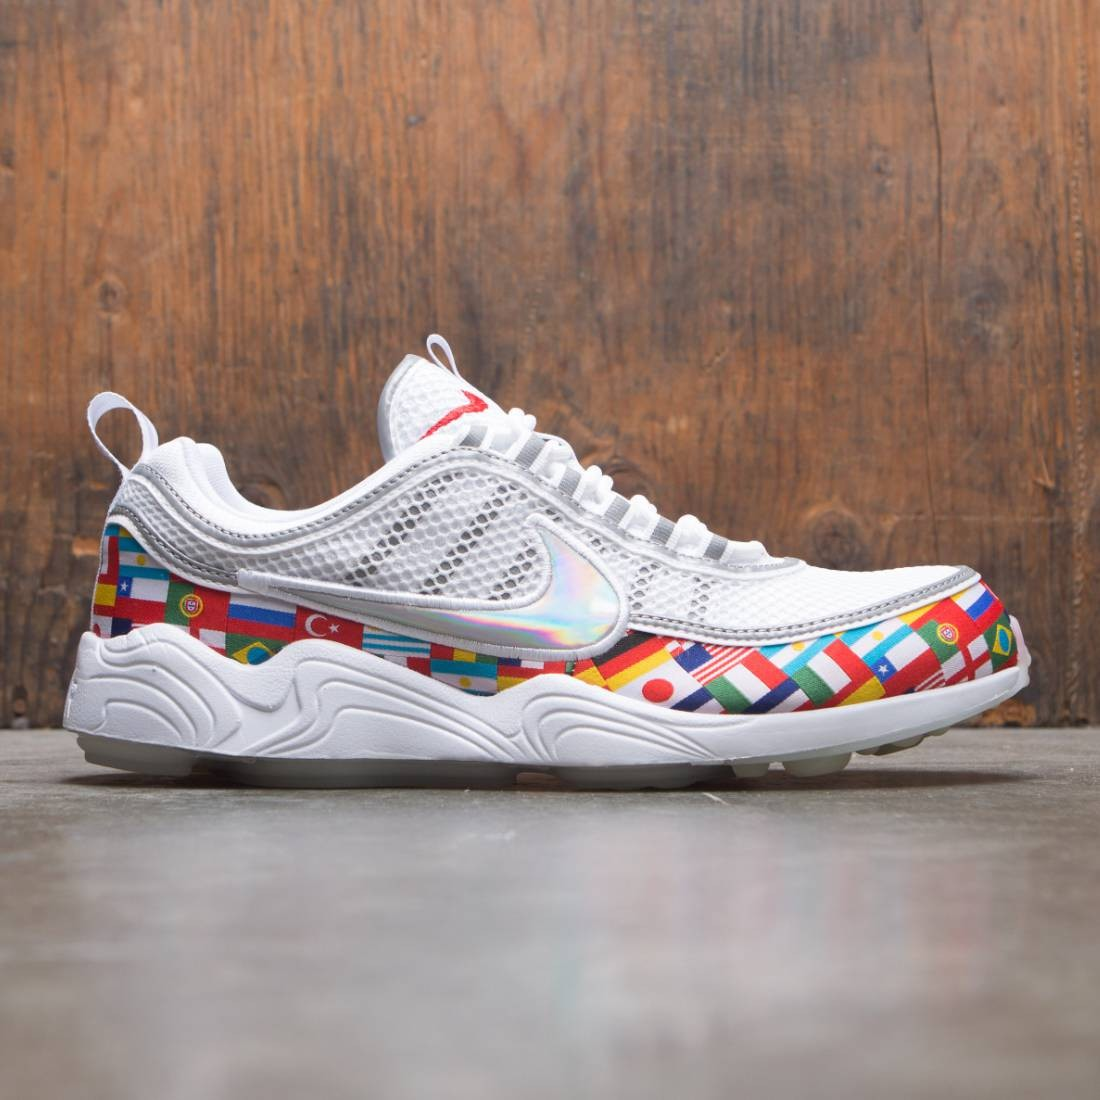 ... closeout nike men air zoom spiridon 16 nic white multi color 997ac 0fb75 1c388b752